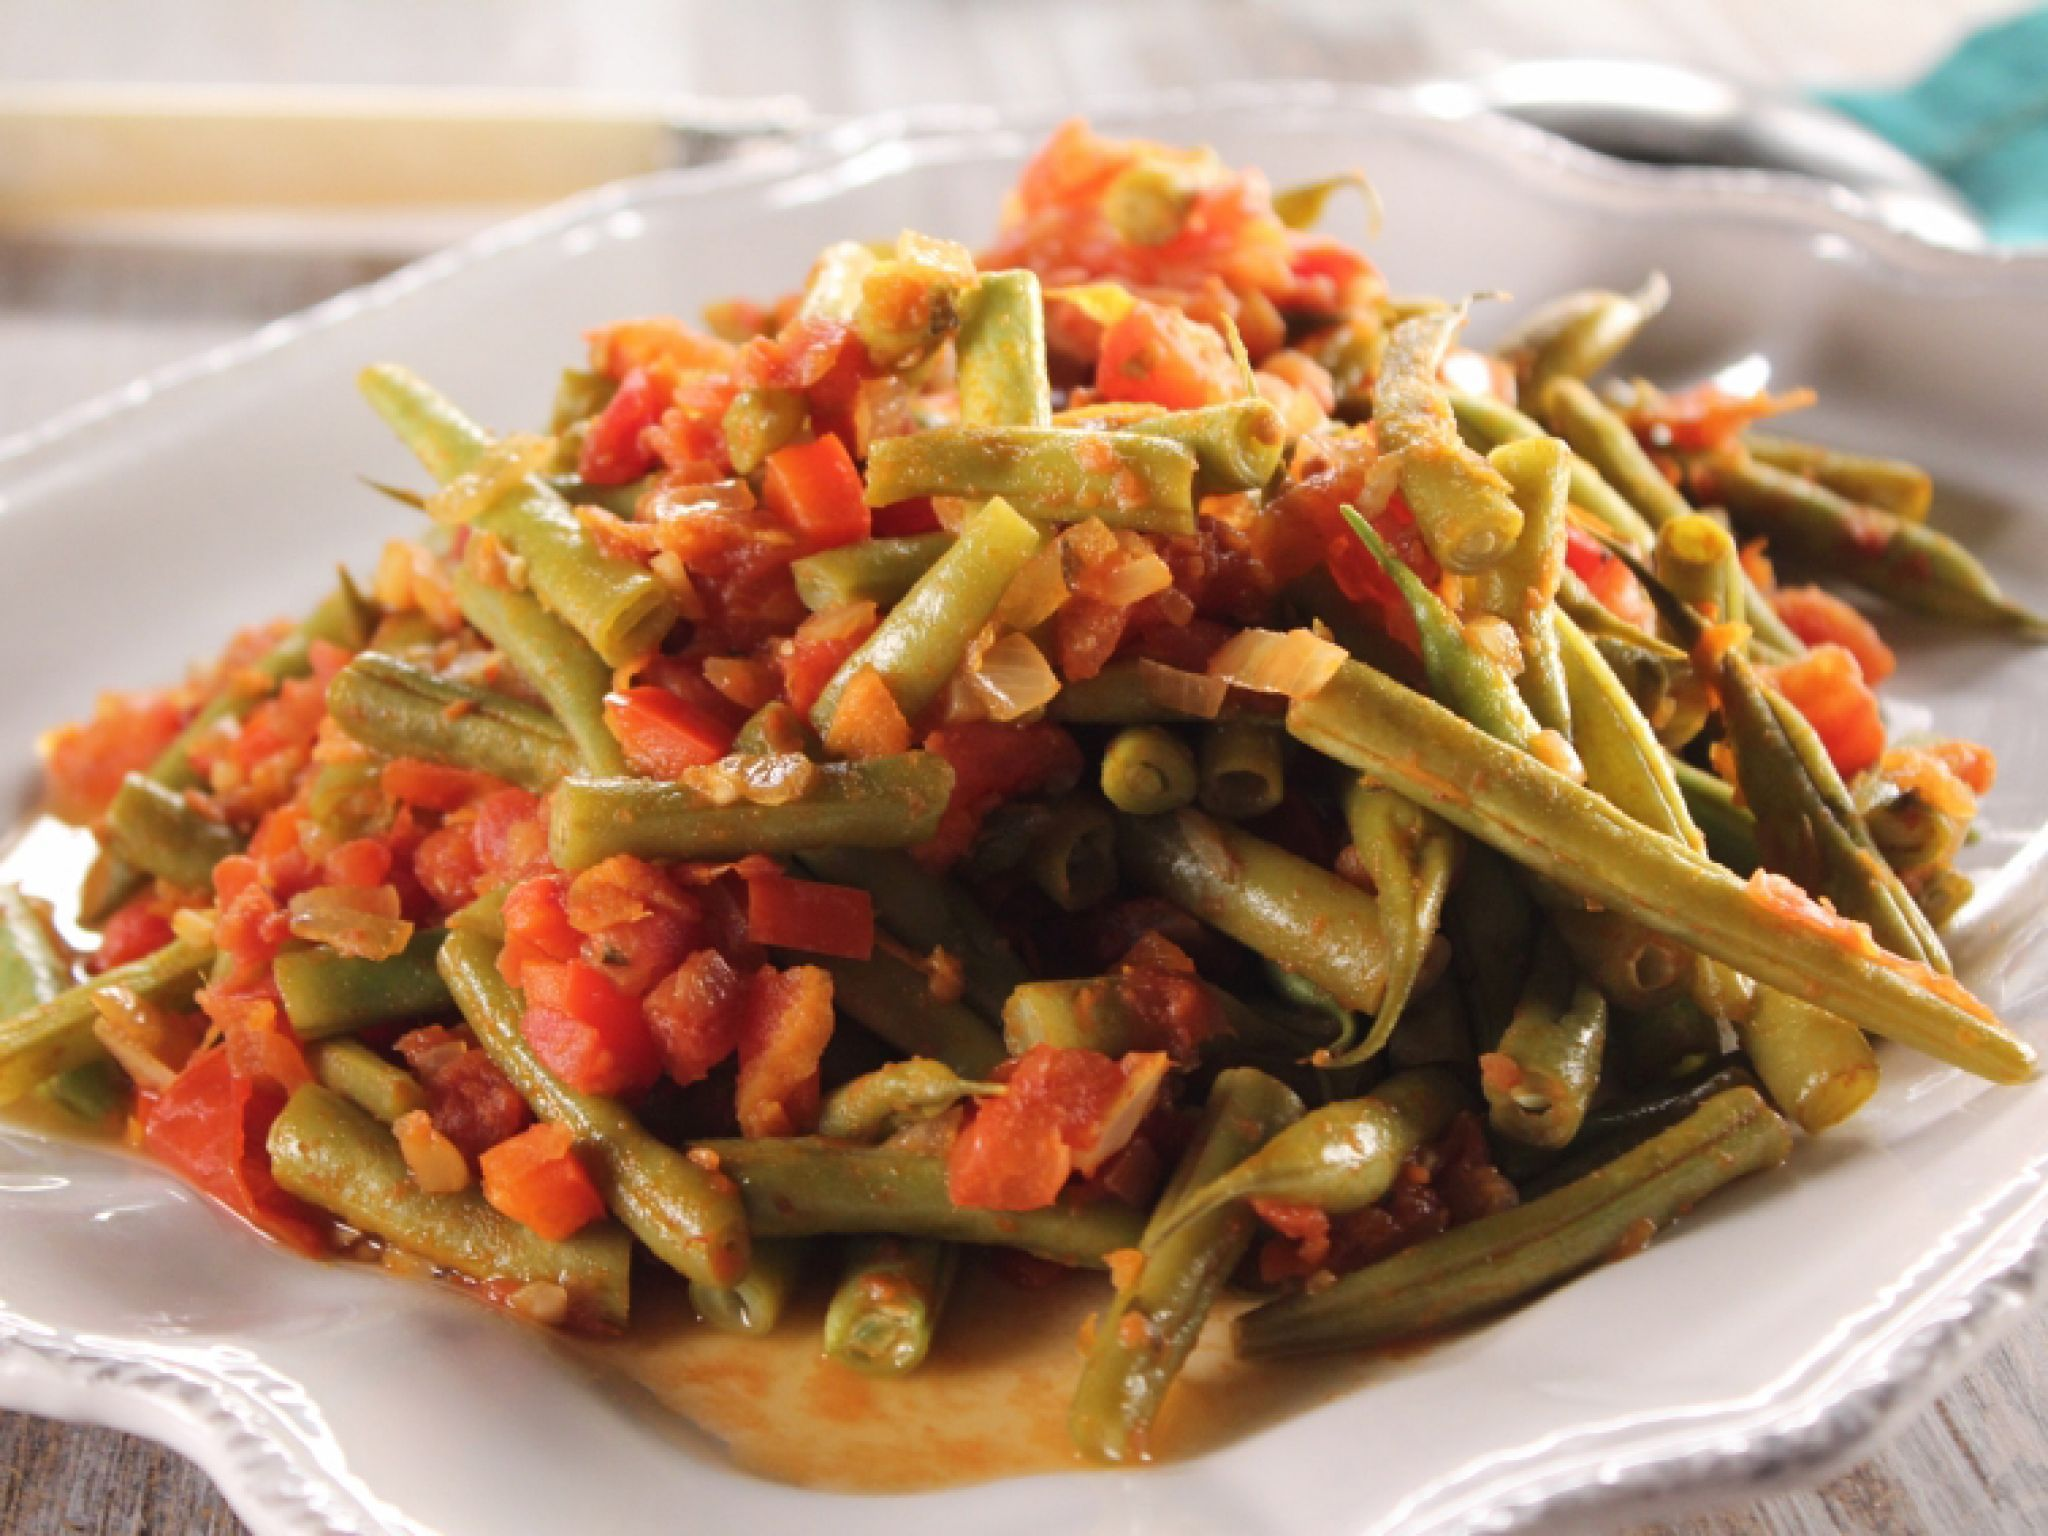 String beans and tomatoes recipe trisha yearwood beans and food dishes string beans and tomatoes recipe from trisha yearwood via food network forumfinder Image collections